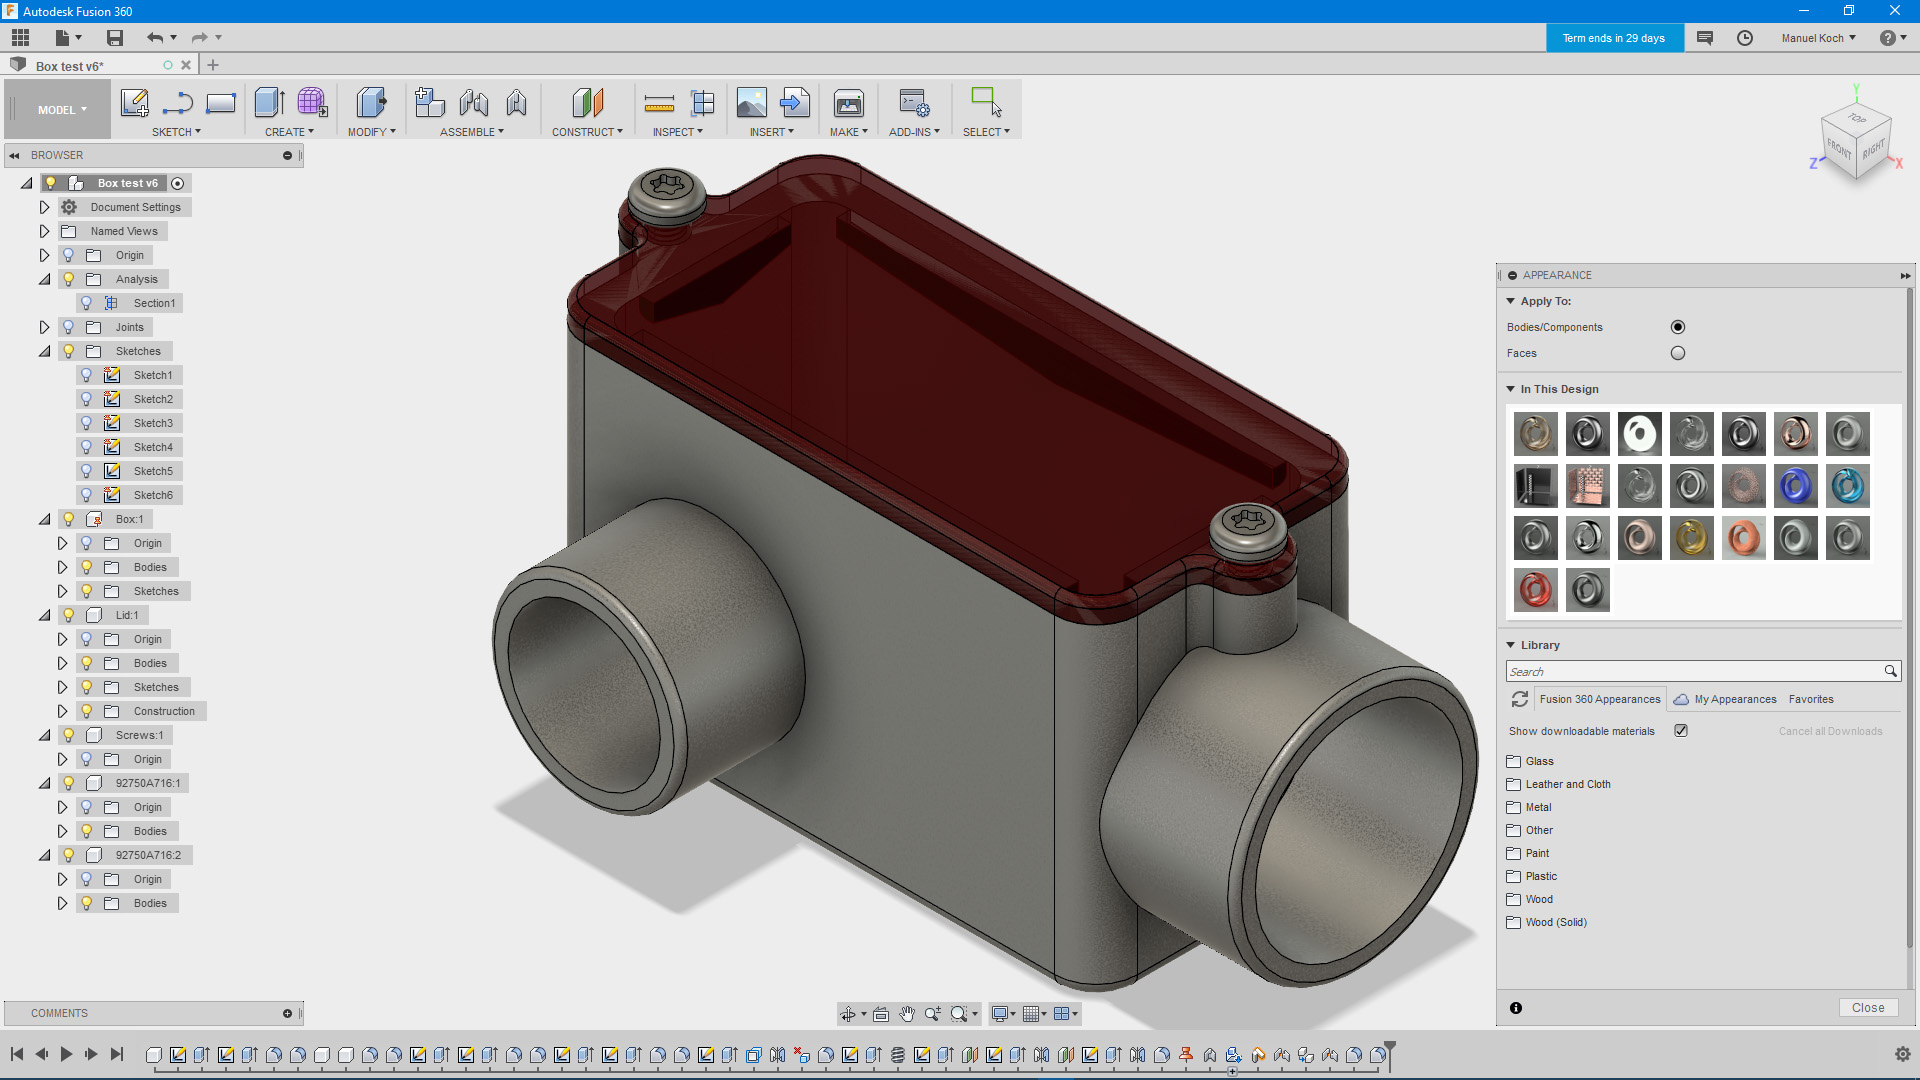 Getting started: Fusion 360 - a beginners guide for